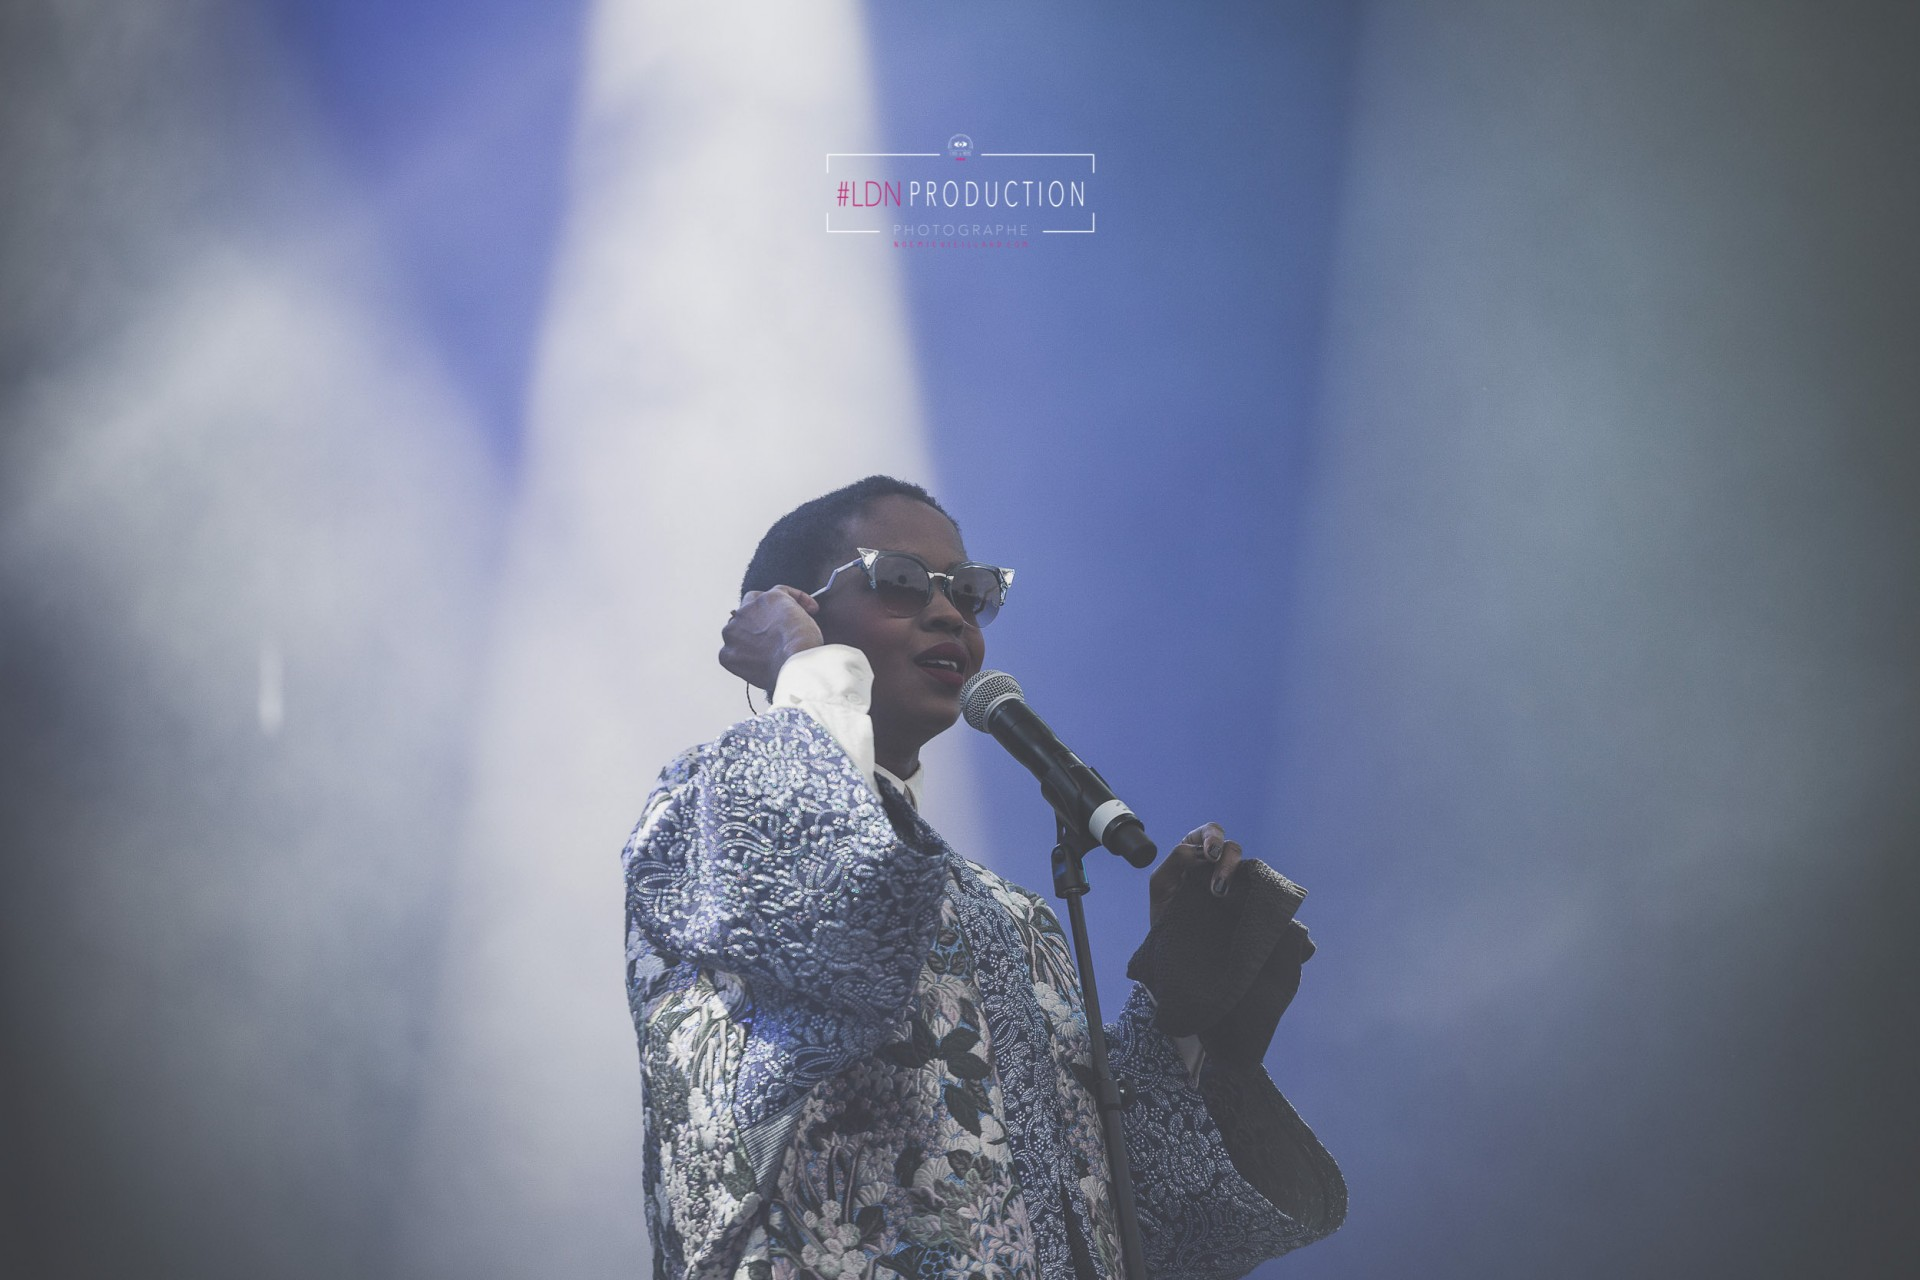 photo-ms-lauryn-hill-fugees-hip-hop-usa-soul-festival-papillons-de-nuit-normandie-noemie-vieillard-13